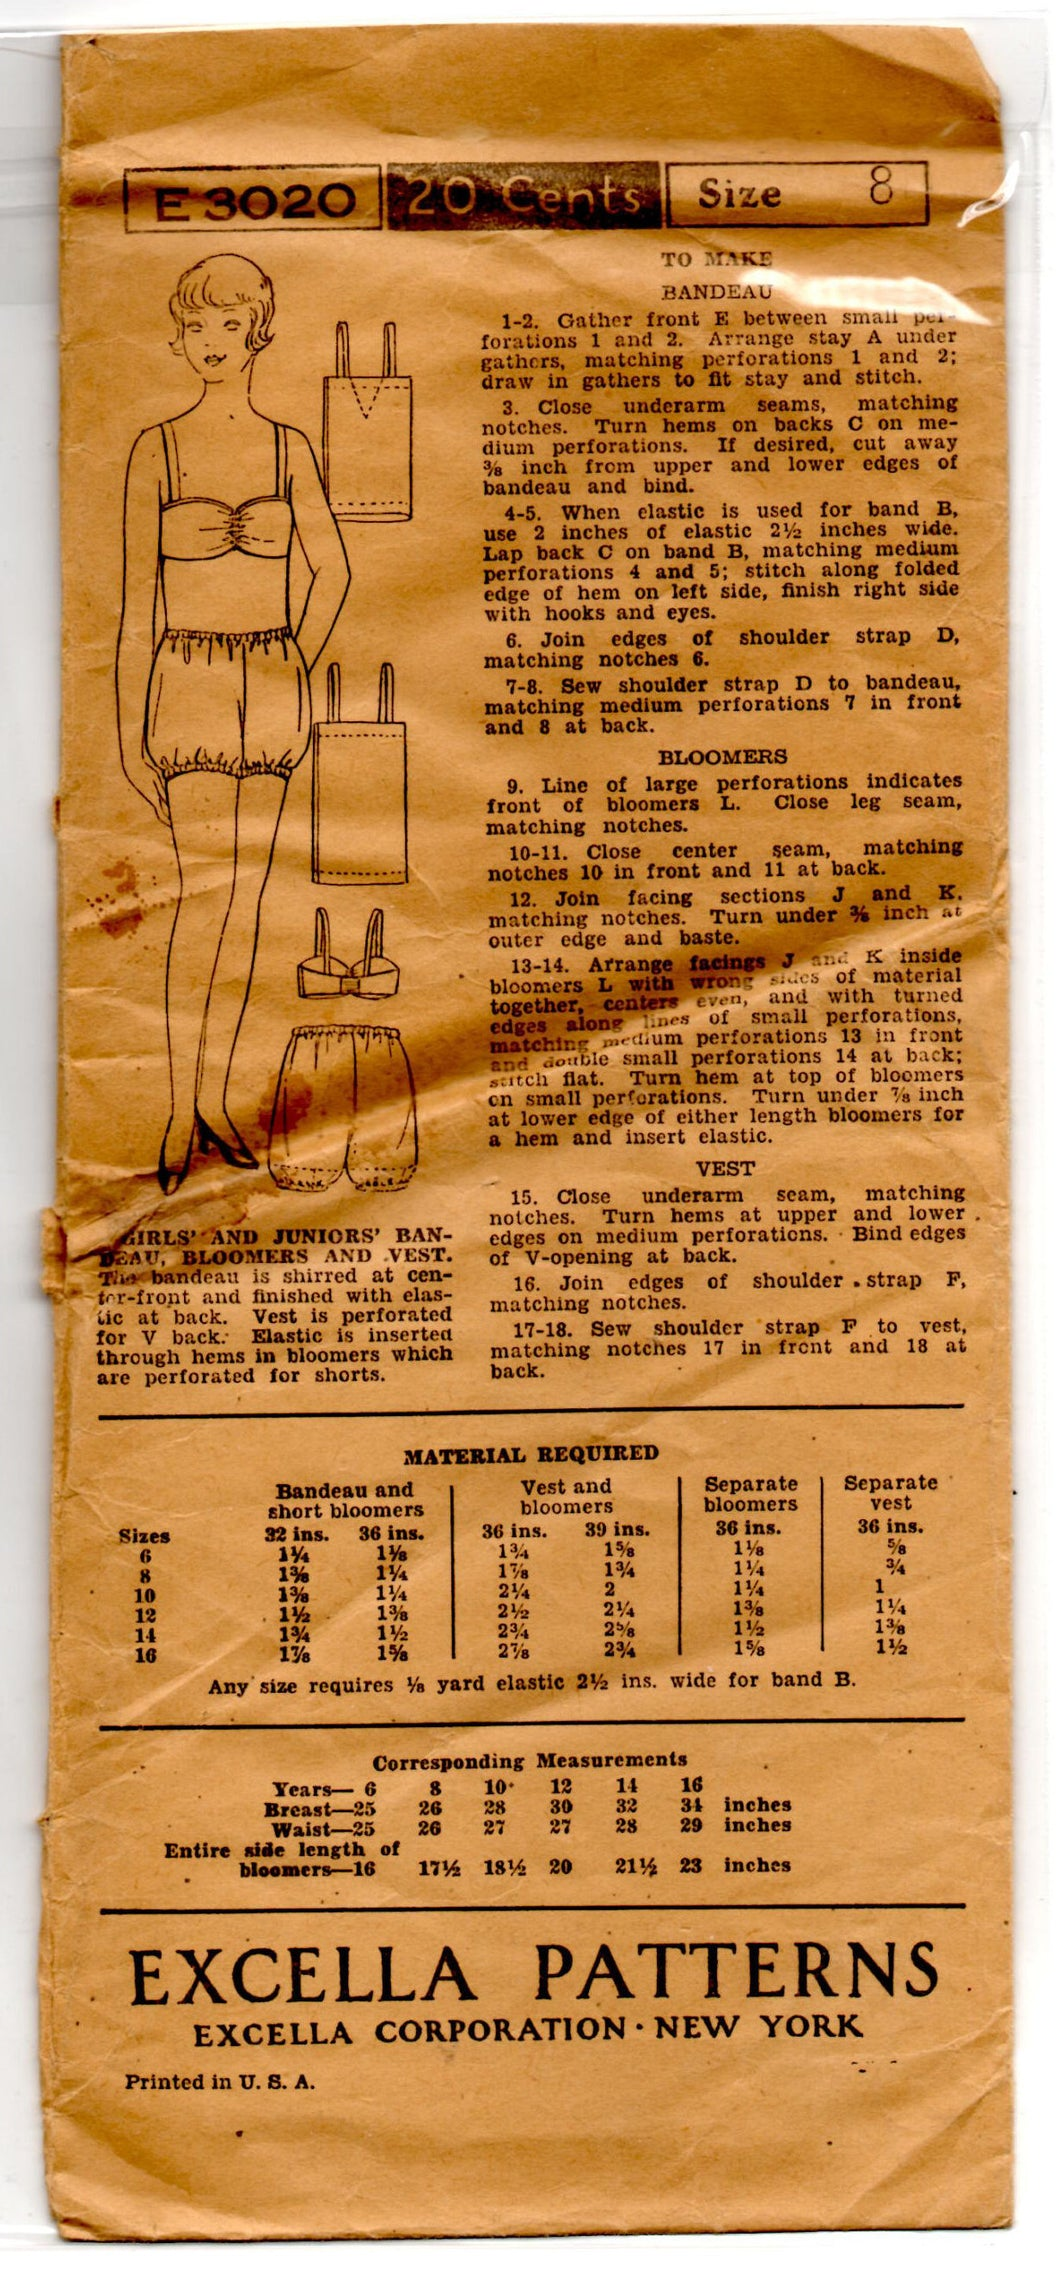 1930's Excella Bra, Bloomers and Undershirt for Girls Pattern - Breast 26